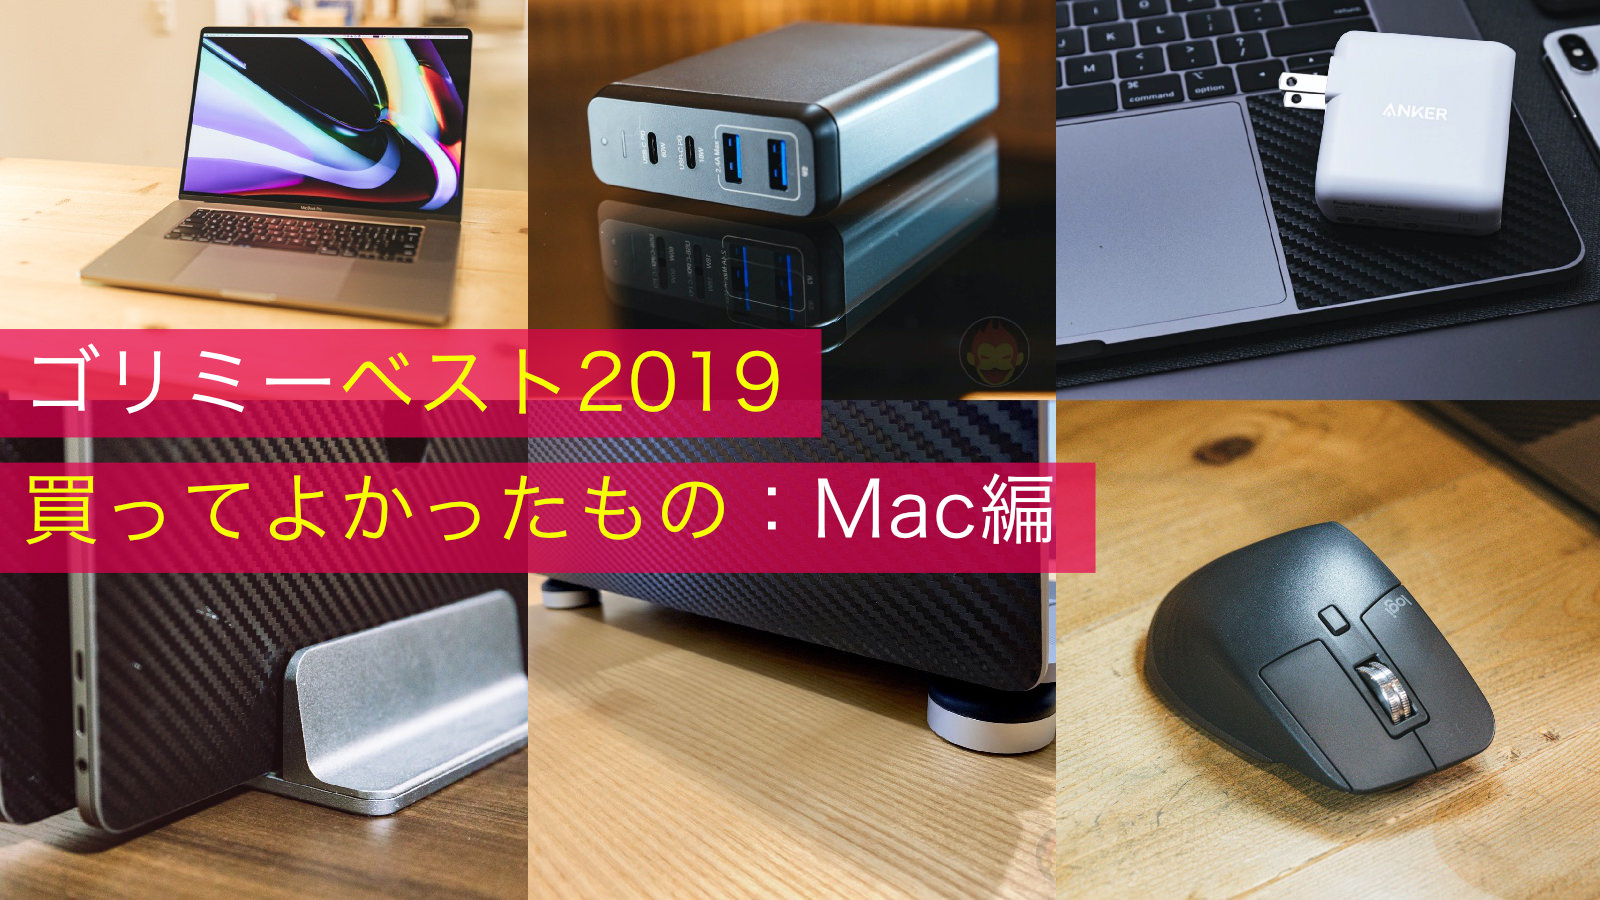 Best Buy 2019 Mac